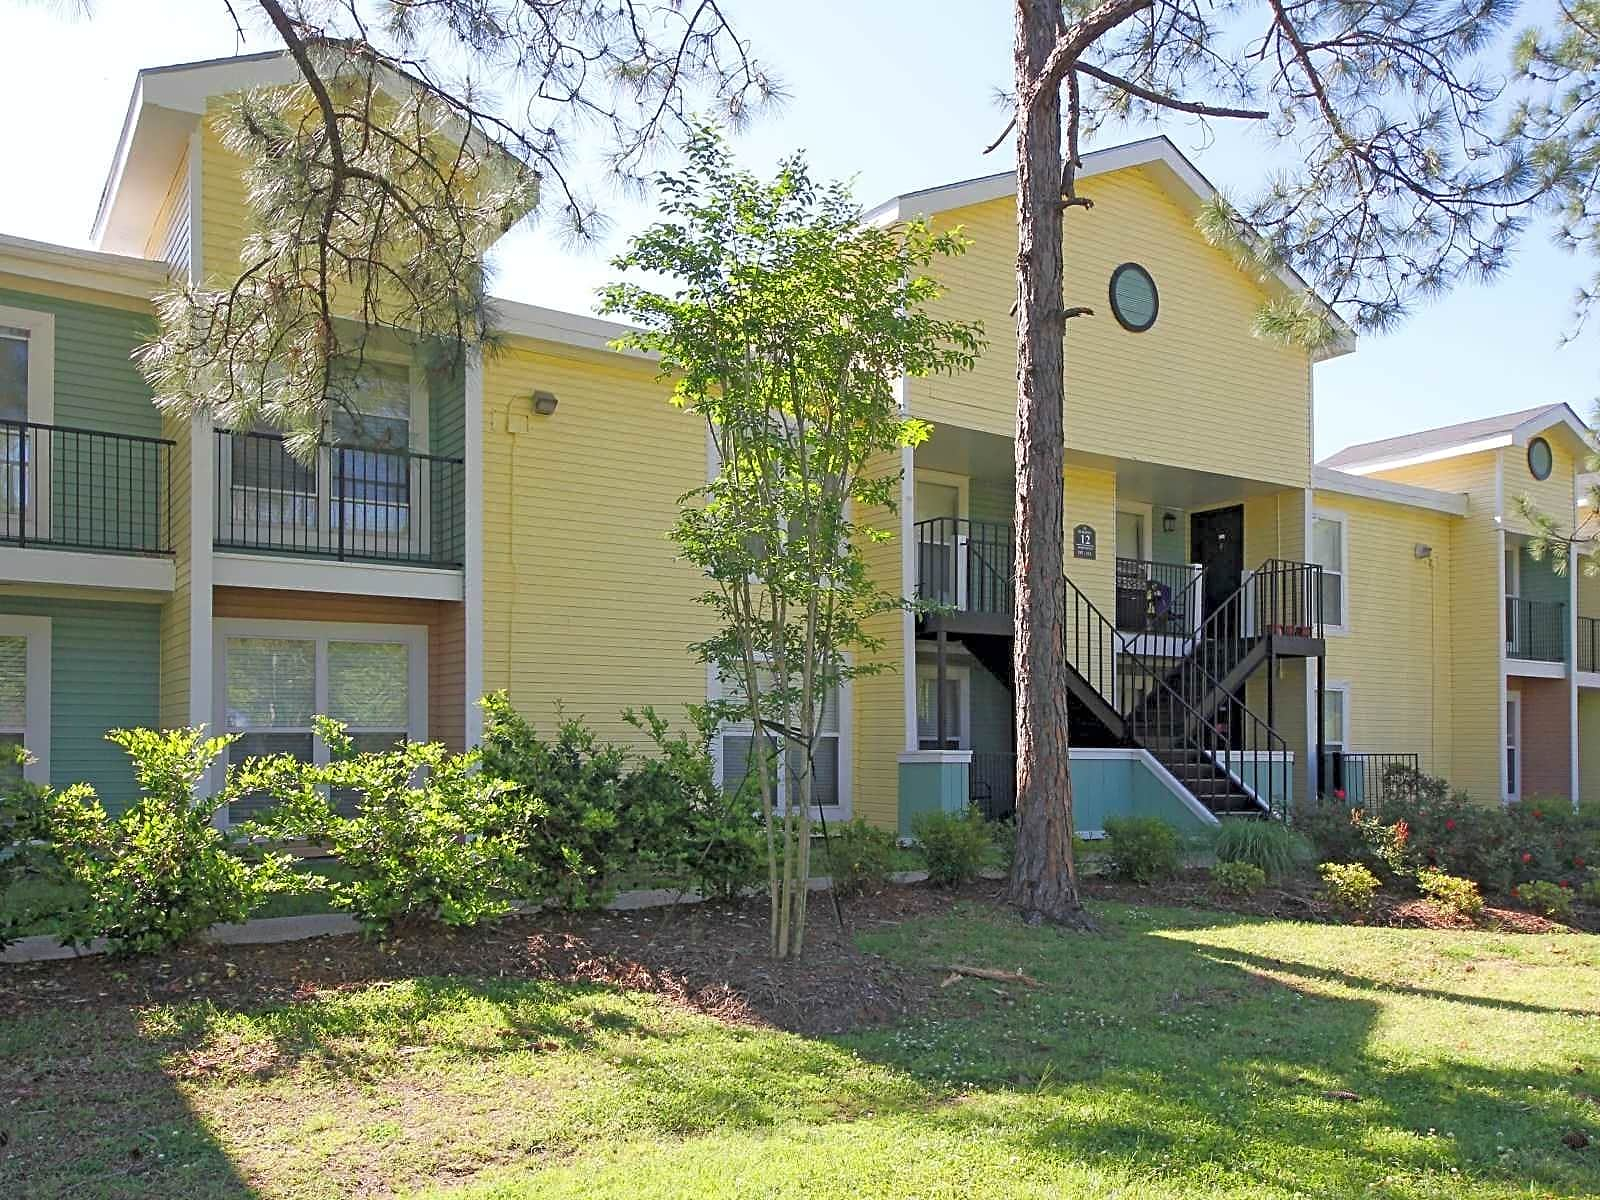 Pet Friendly Apartments In Baton Rouge LA Pet Friendly Houses For Rent